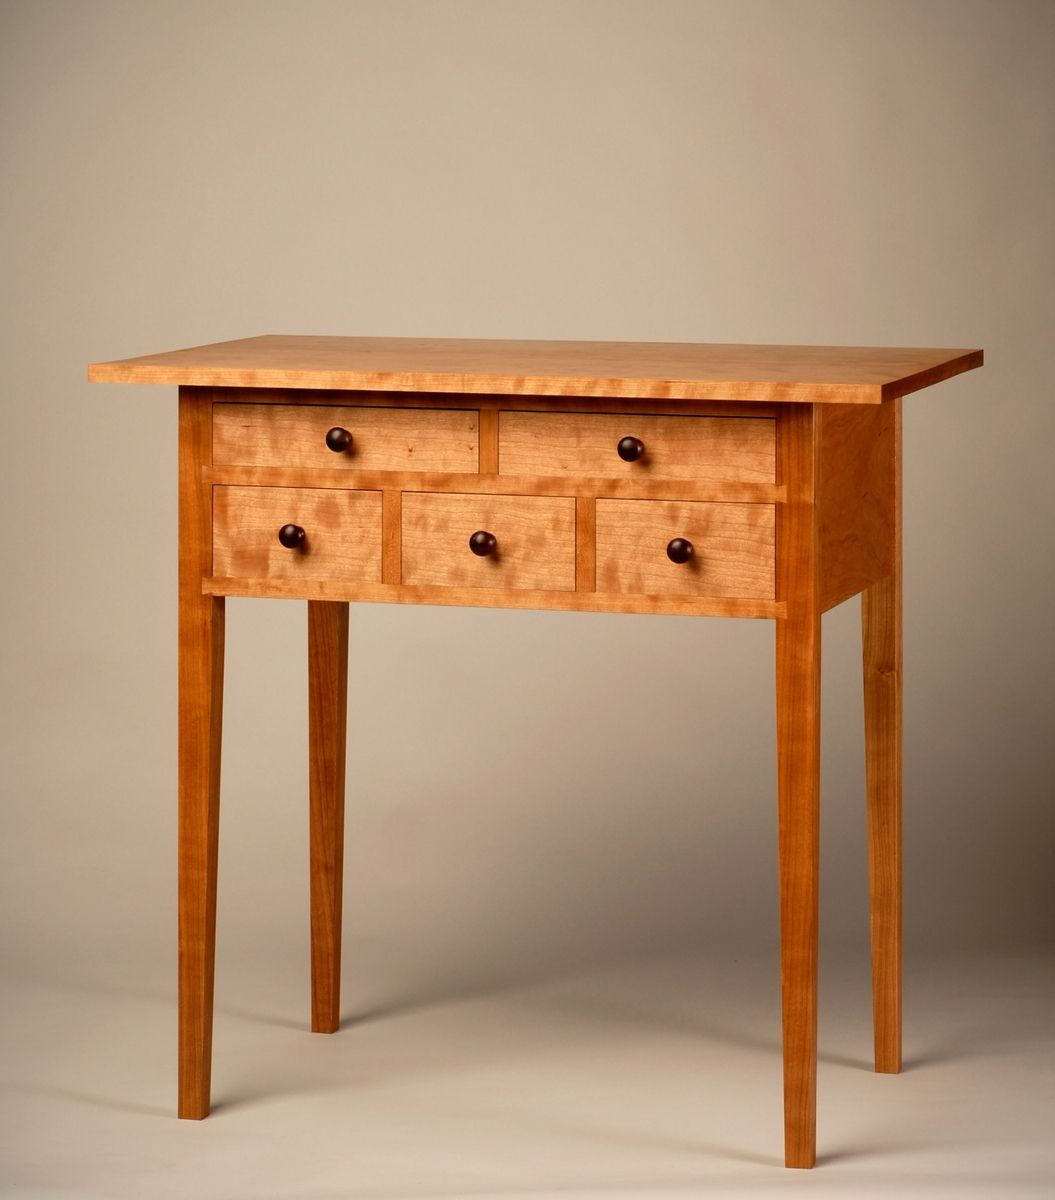 Custom shaker 5 drawer hall table by aedanworks for Shaker furniture